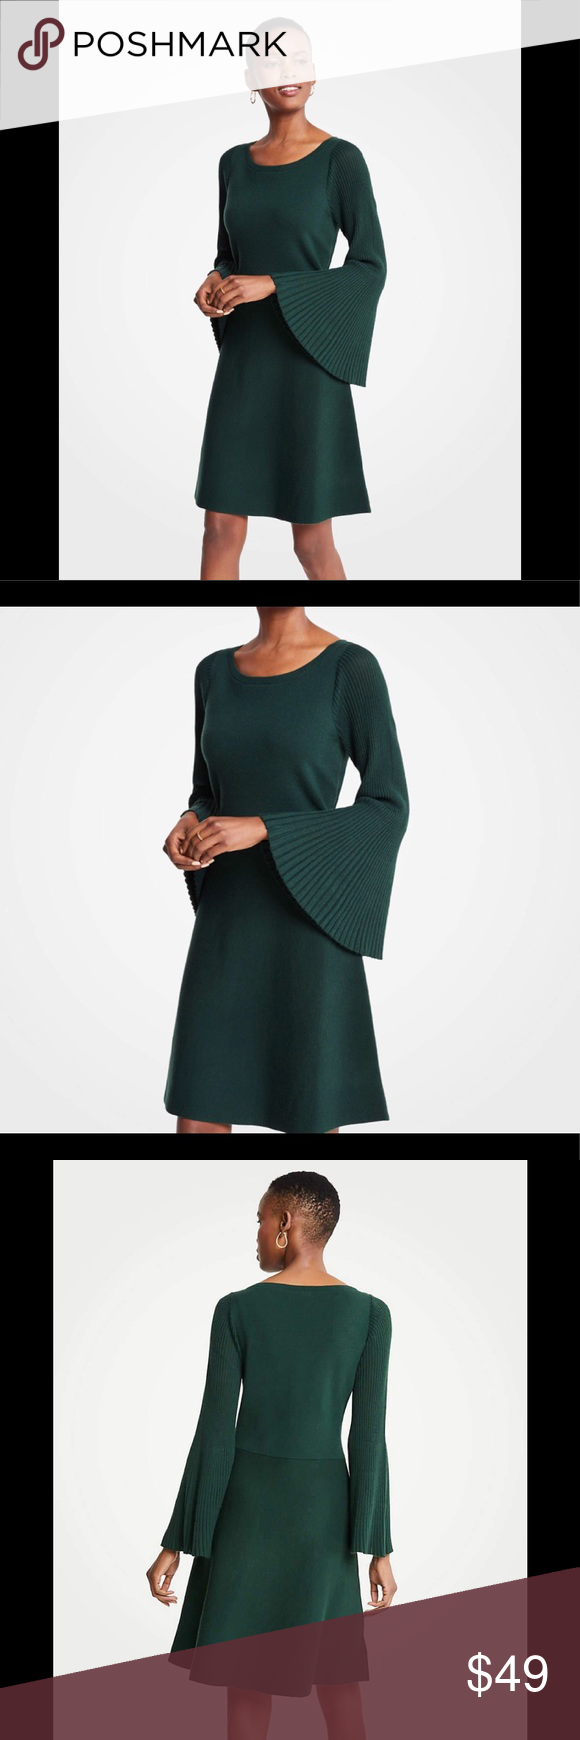 438c96a5478 ANN TAYLOR Petite Flare Sleeve Sweater Dress Sz Mp Turn up the volume with  our refined sweater dress